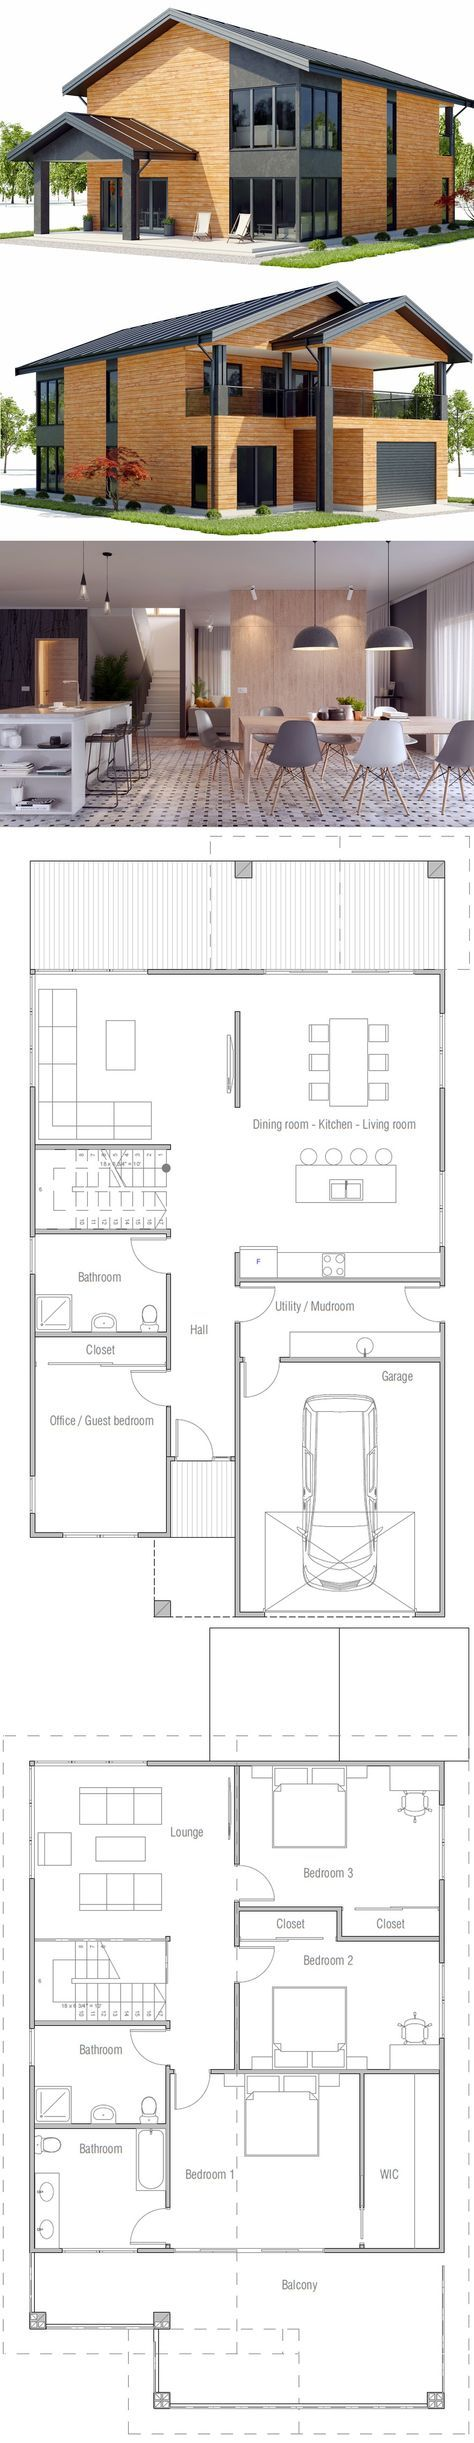 I kind of like this floor plan